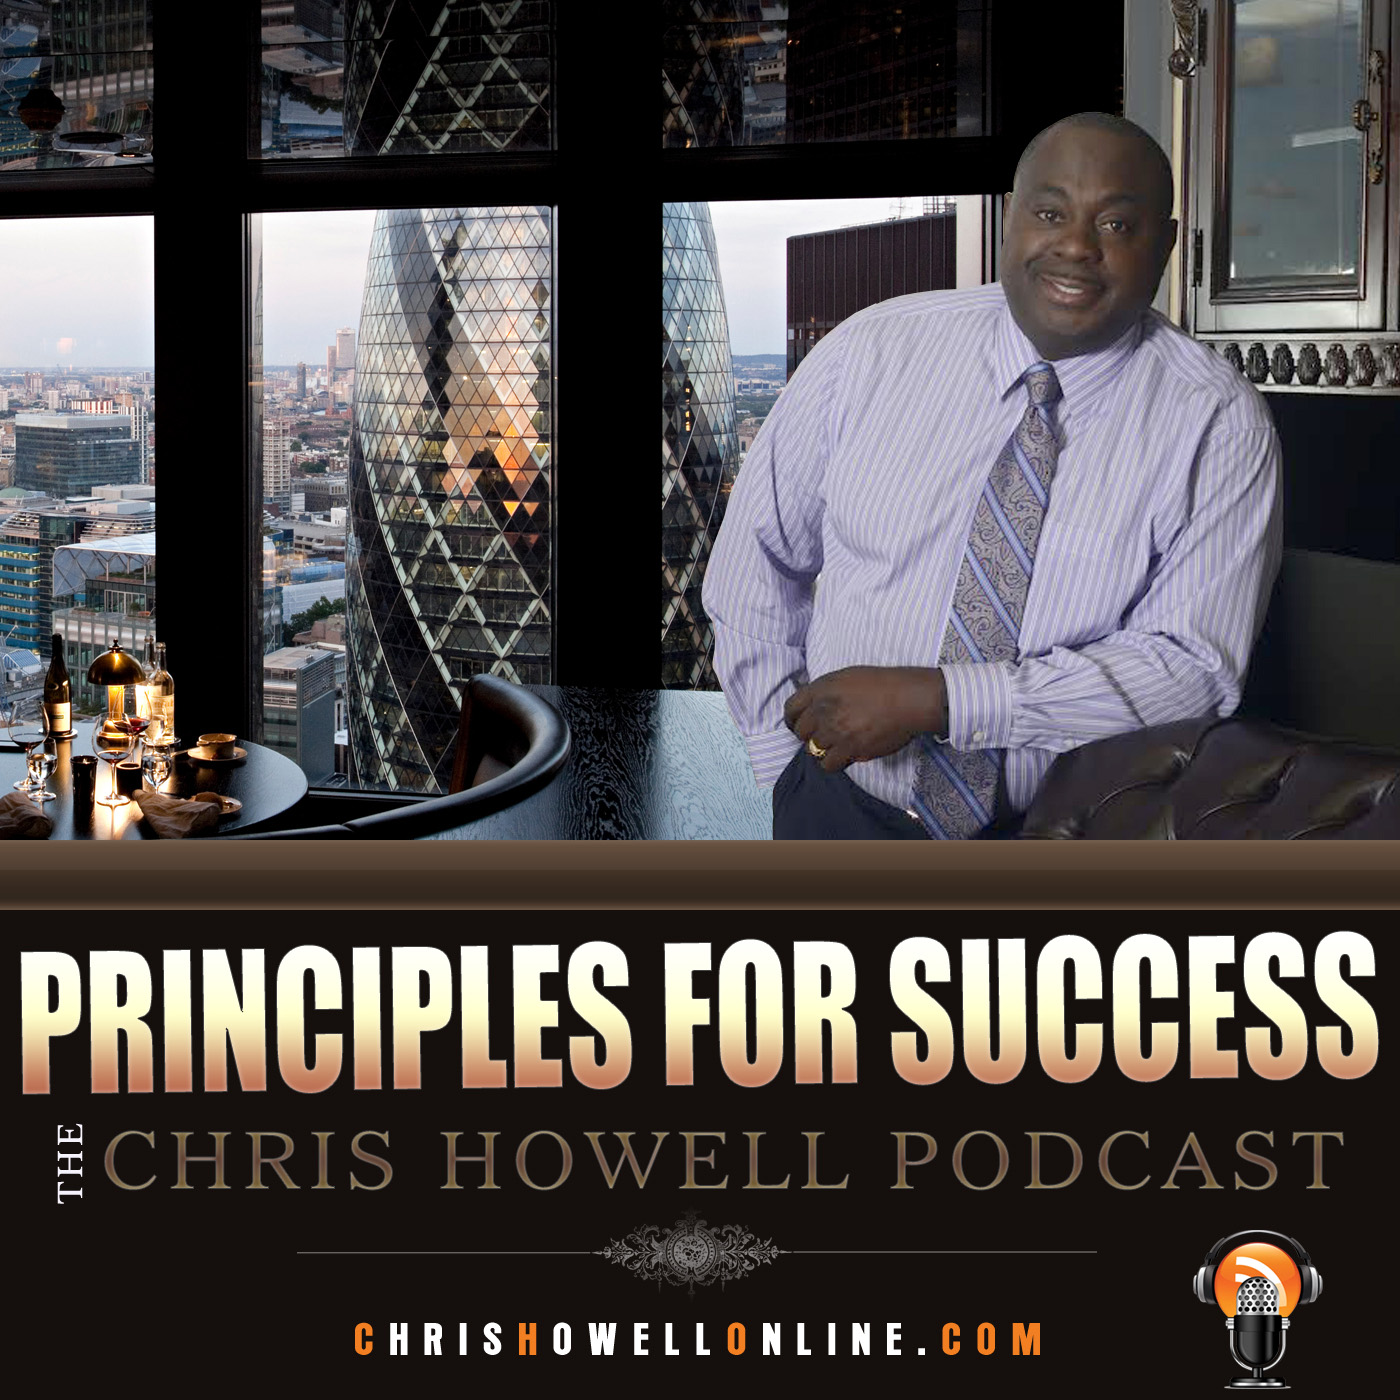 Principles for Success - The Chris Howell Podcast show art